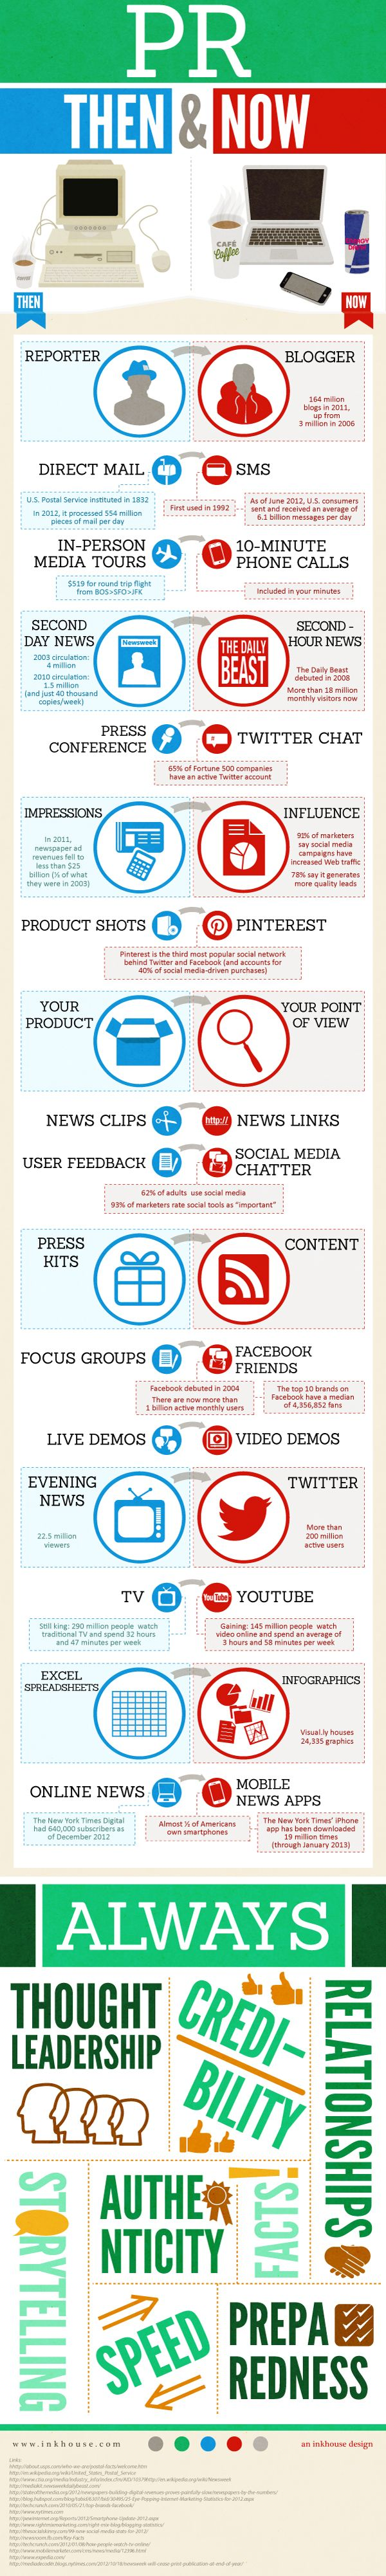 PR Then and Now infographic